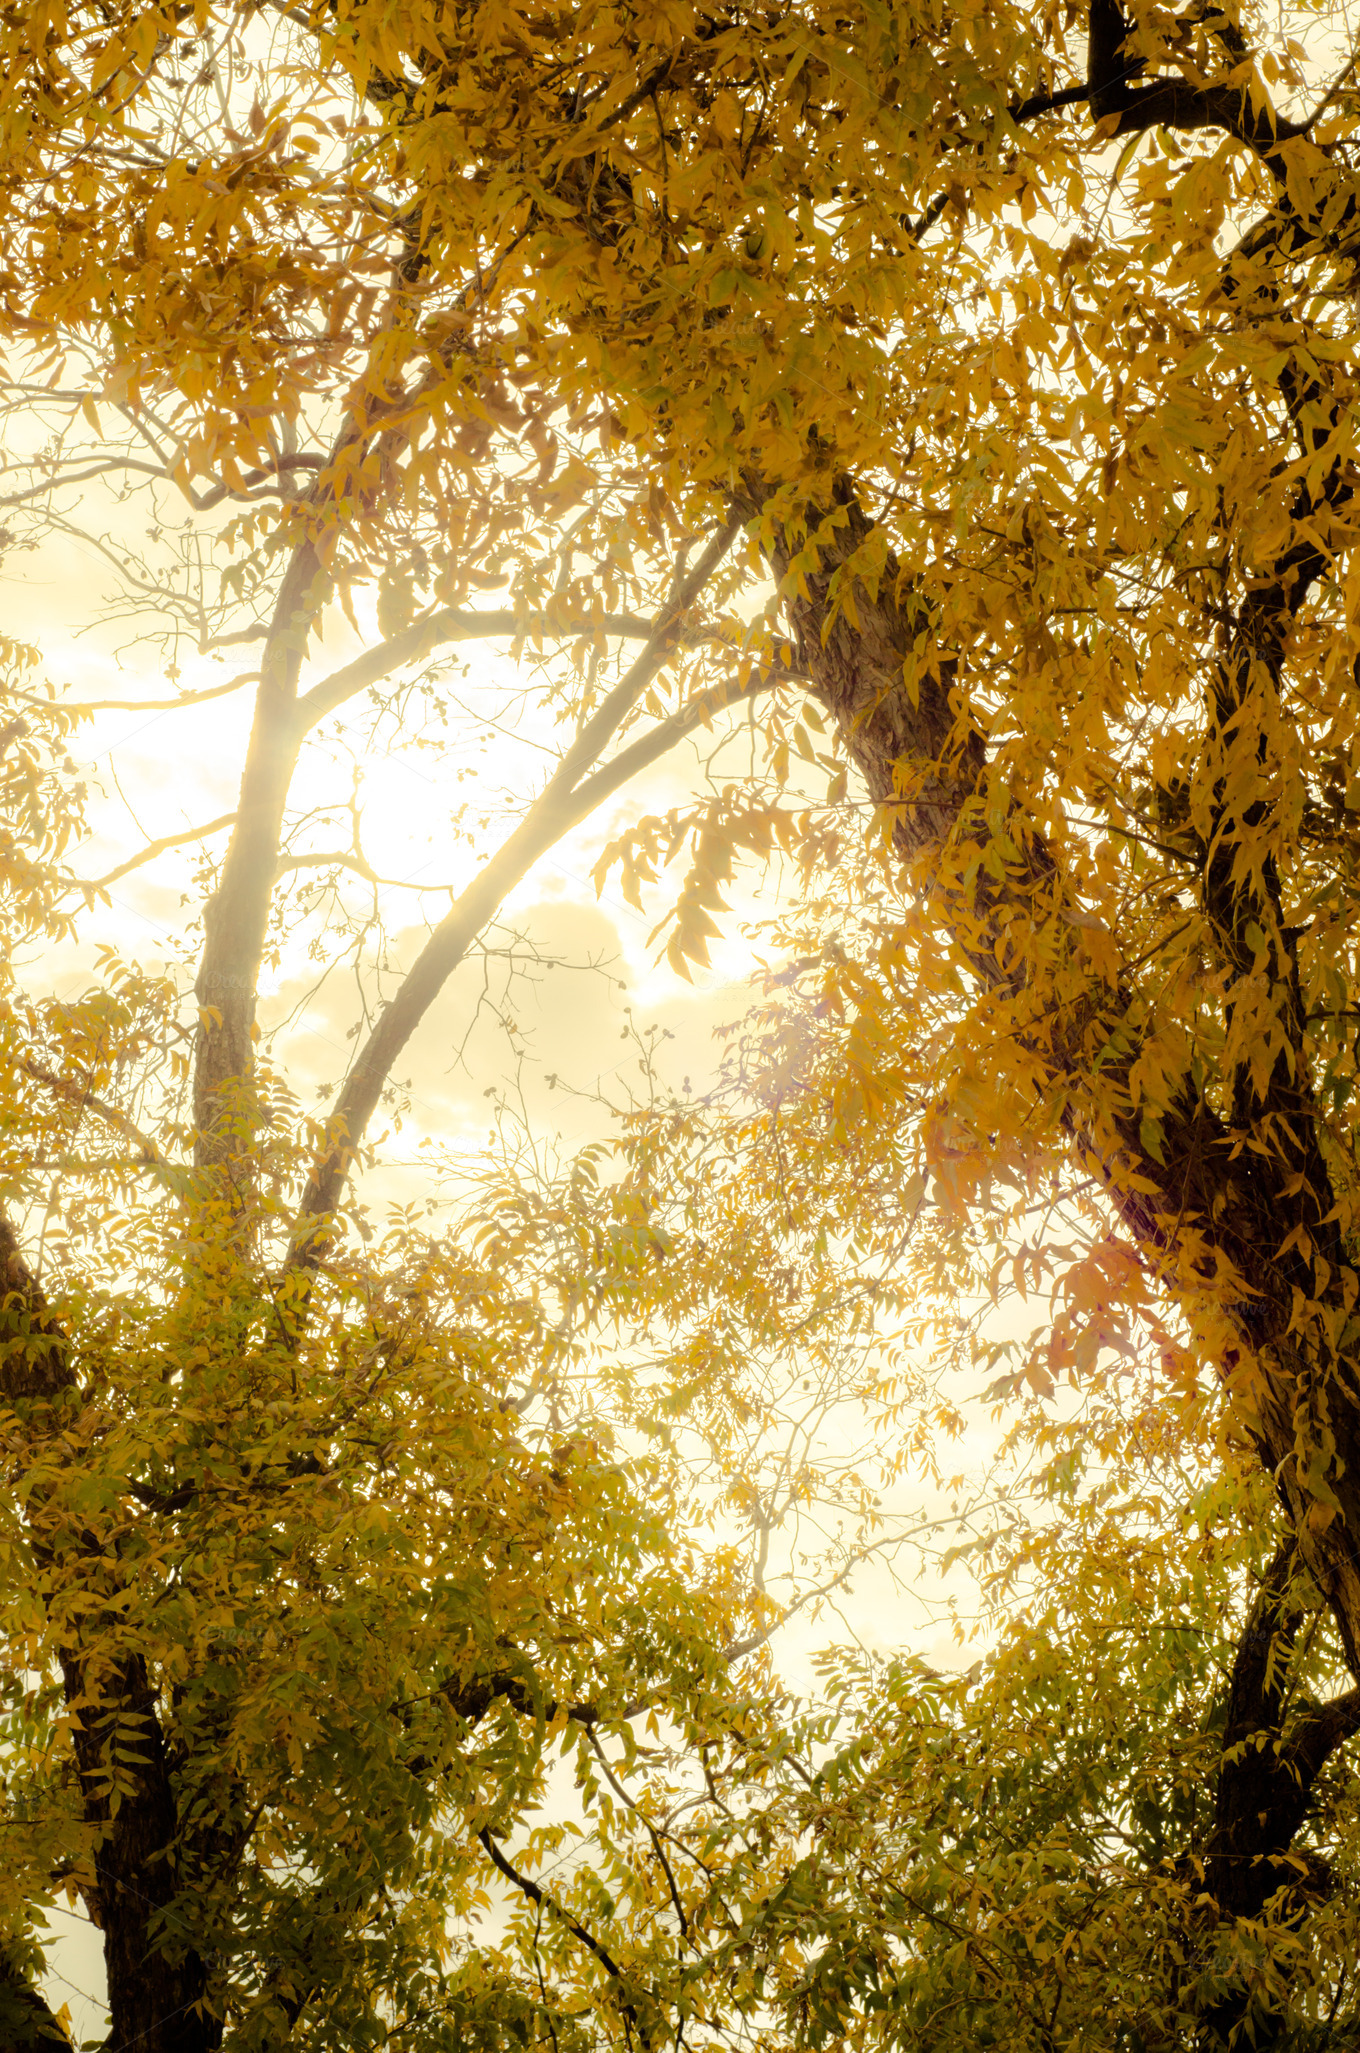 Sun Glowing Through Autumn Leaves Nature Photos On